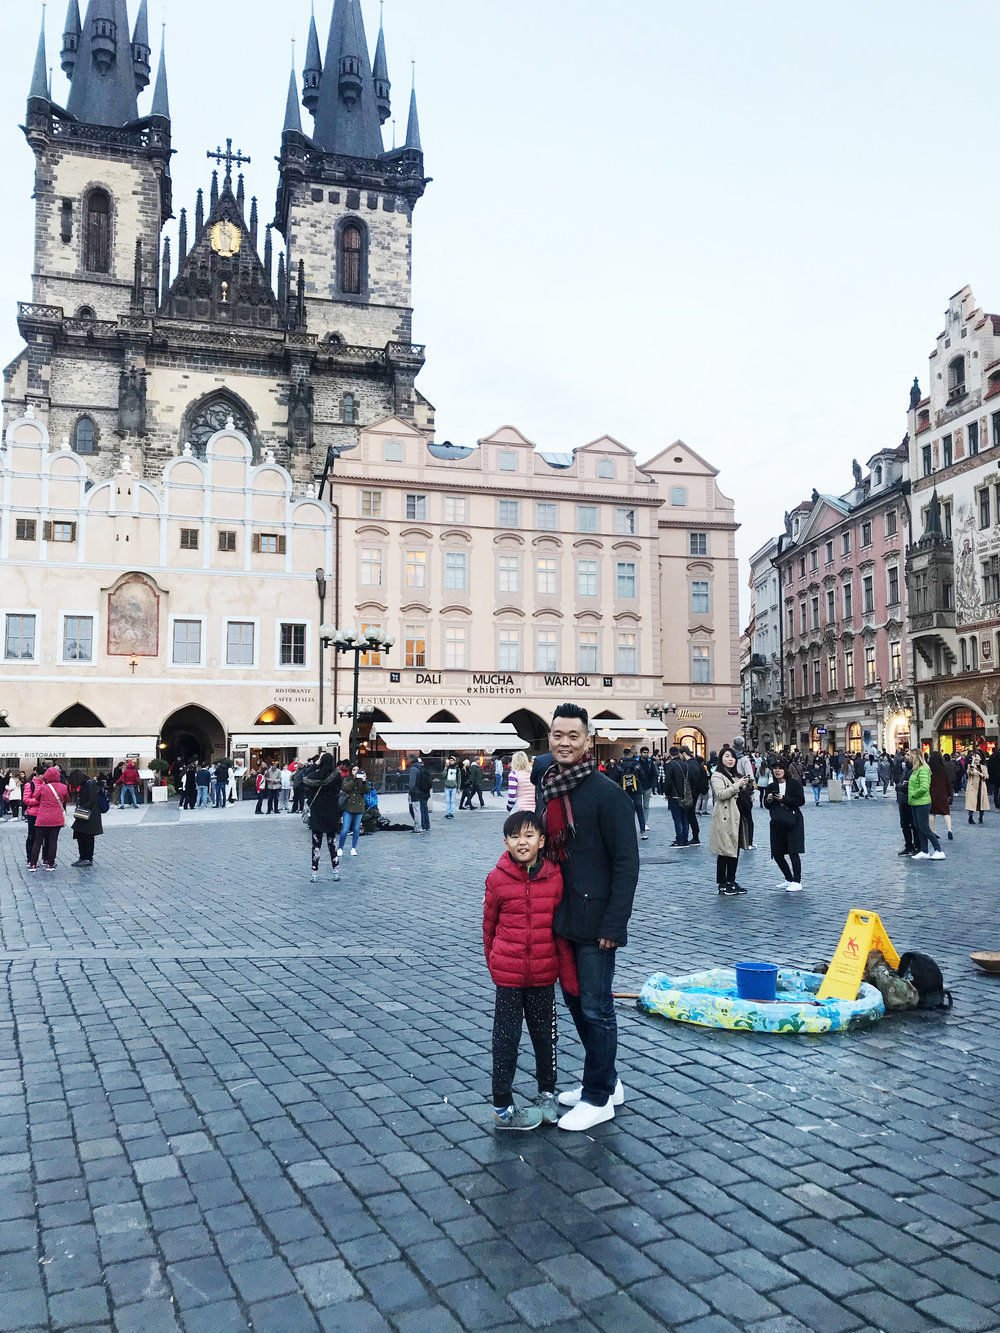 Old Town Square- the ground here used to be at least 10 meters lower long long ago. Praha is known to flooding so they added more dirt/earth to make the ground higher! So most homes and buildings have underground basements / cellars which used to be the first floor.